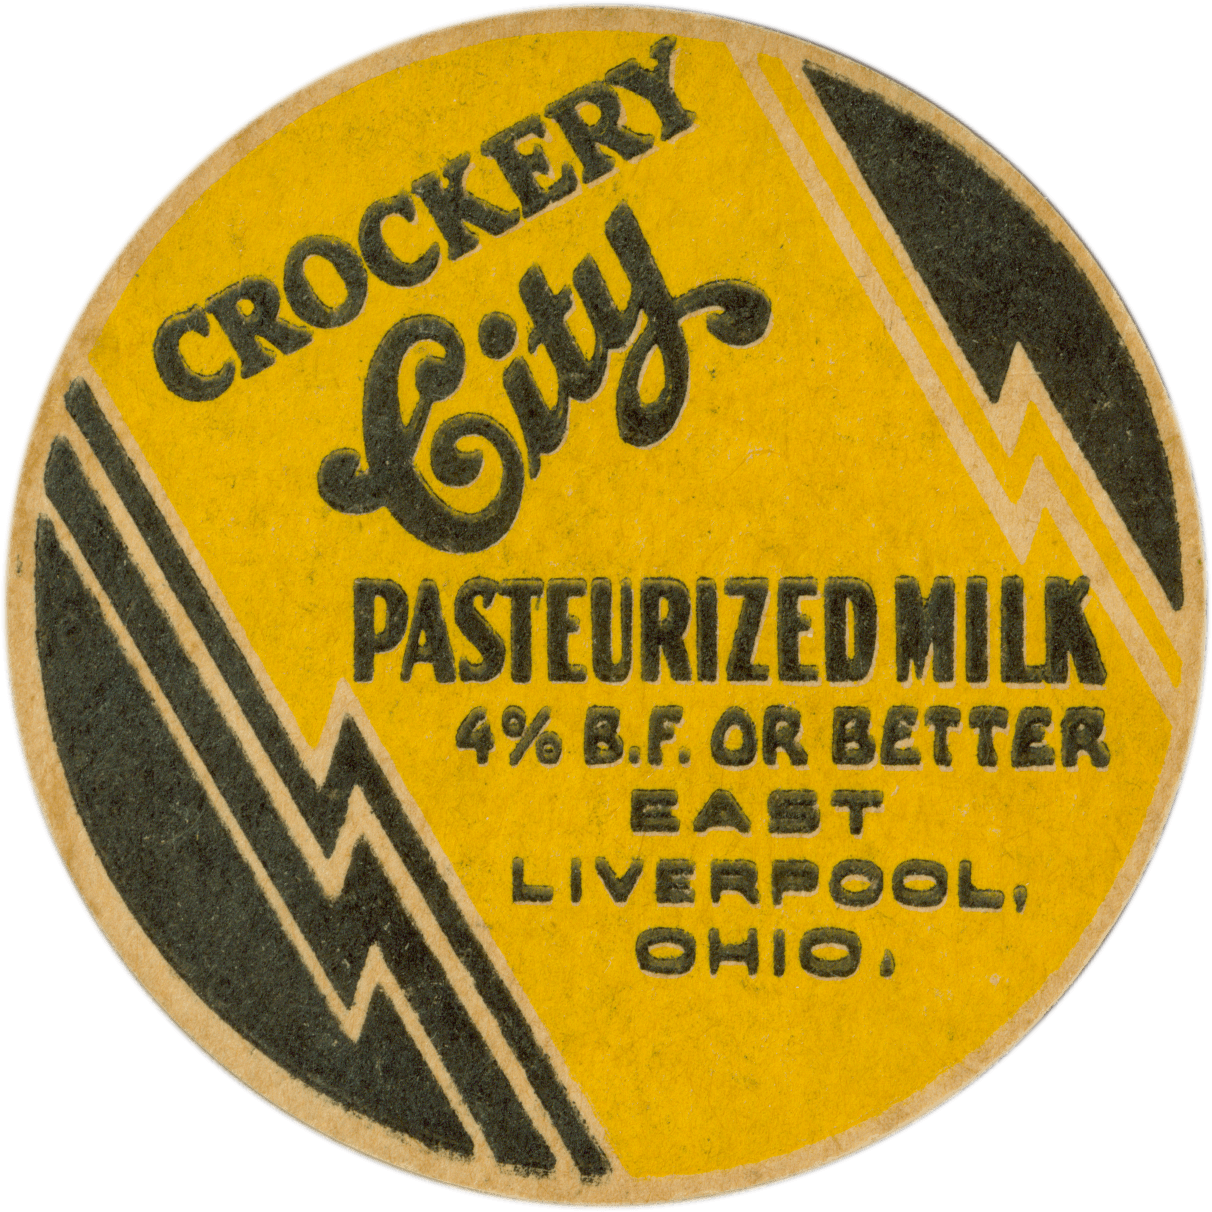 Crockery City Pasteruized Milk